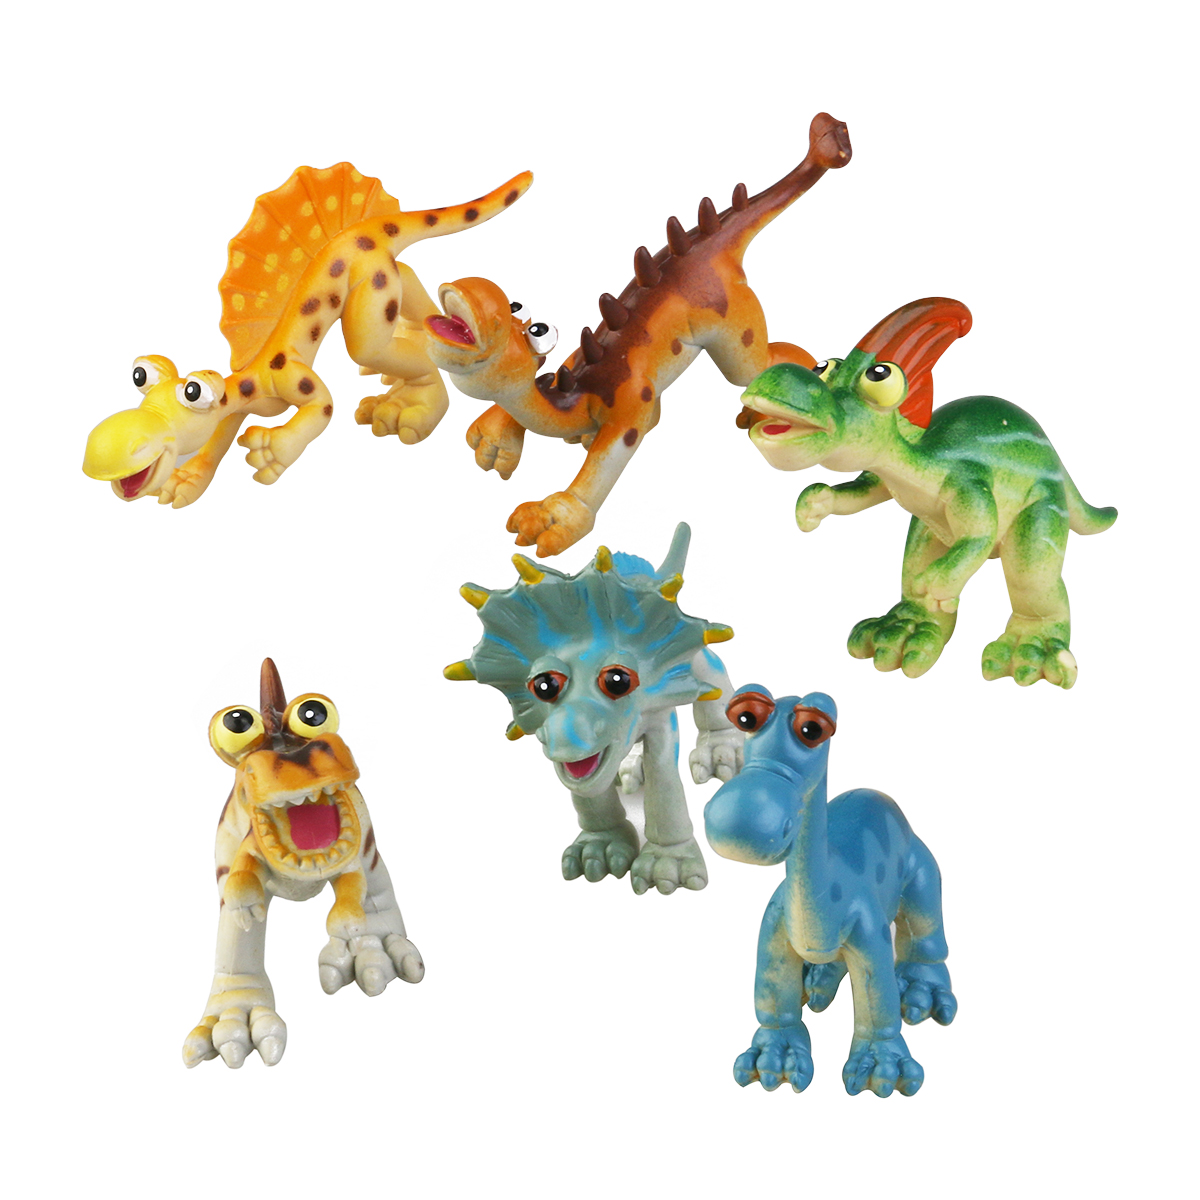 6pcs PVC Cartoon Animal Dinosaur Figure Model Preschool Kids Toy by